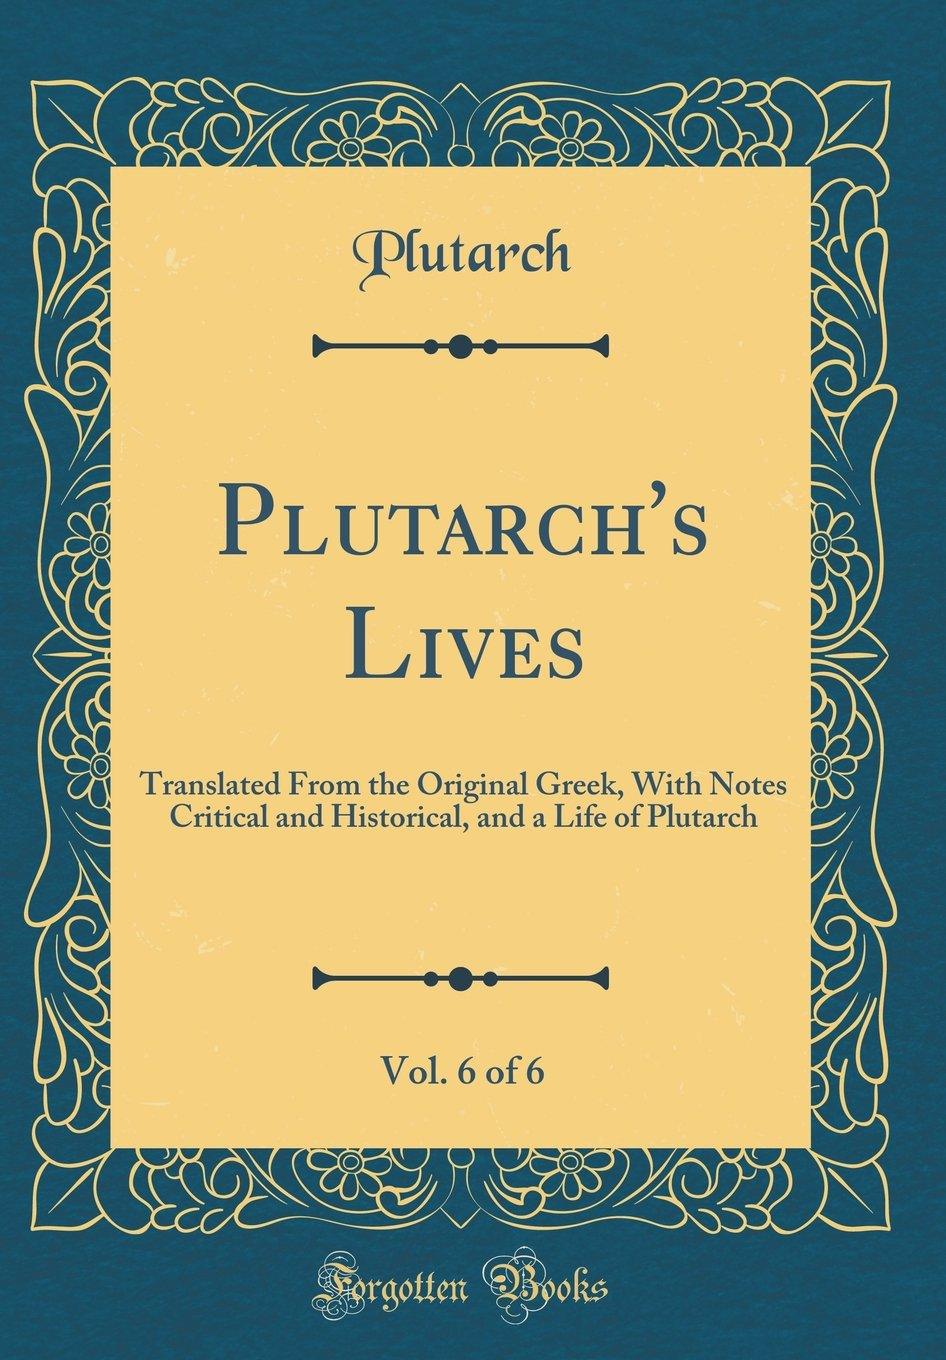 Plutarch's Lives, Vol. 6 of 6: Translated from the Original Greek, with Notes Critical and Historical, and a Life of Plutarch (Classic Reprint) pdf